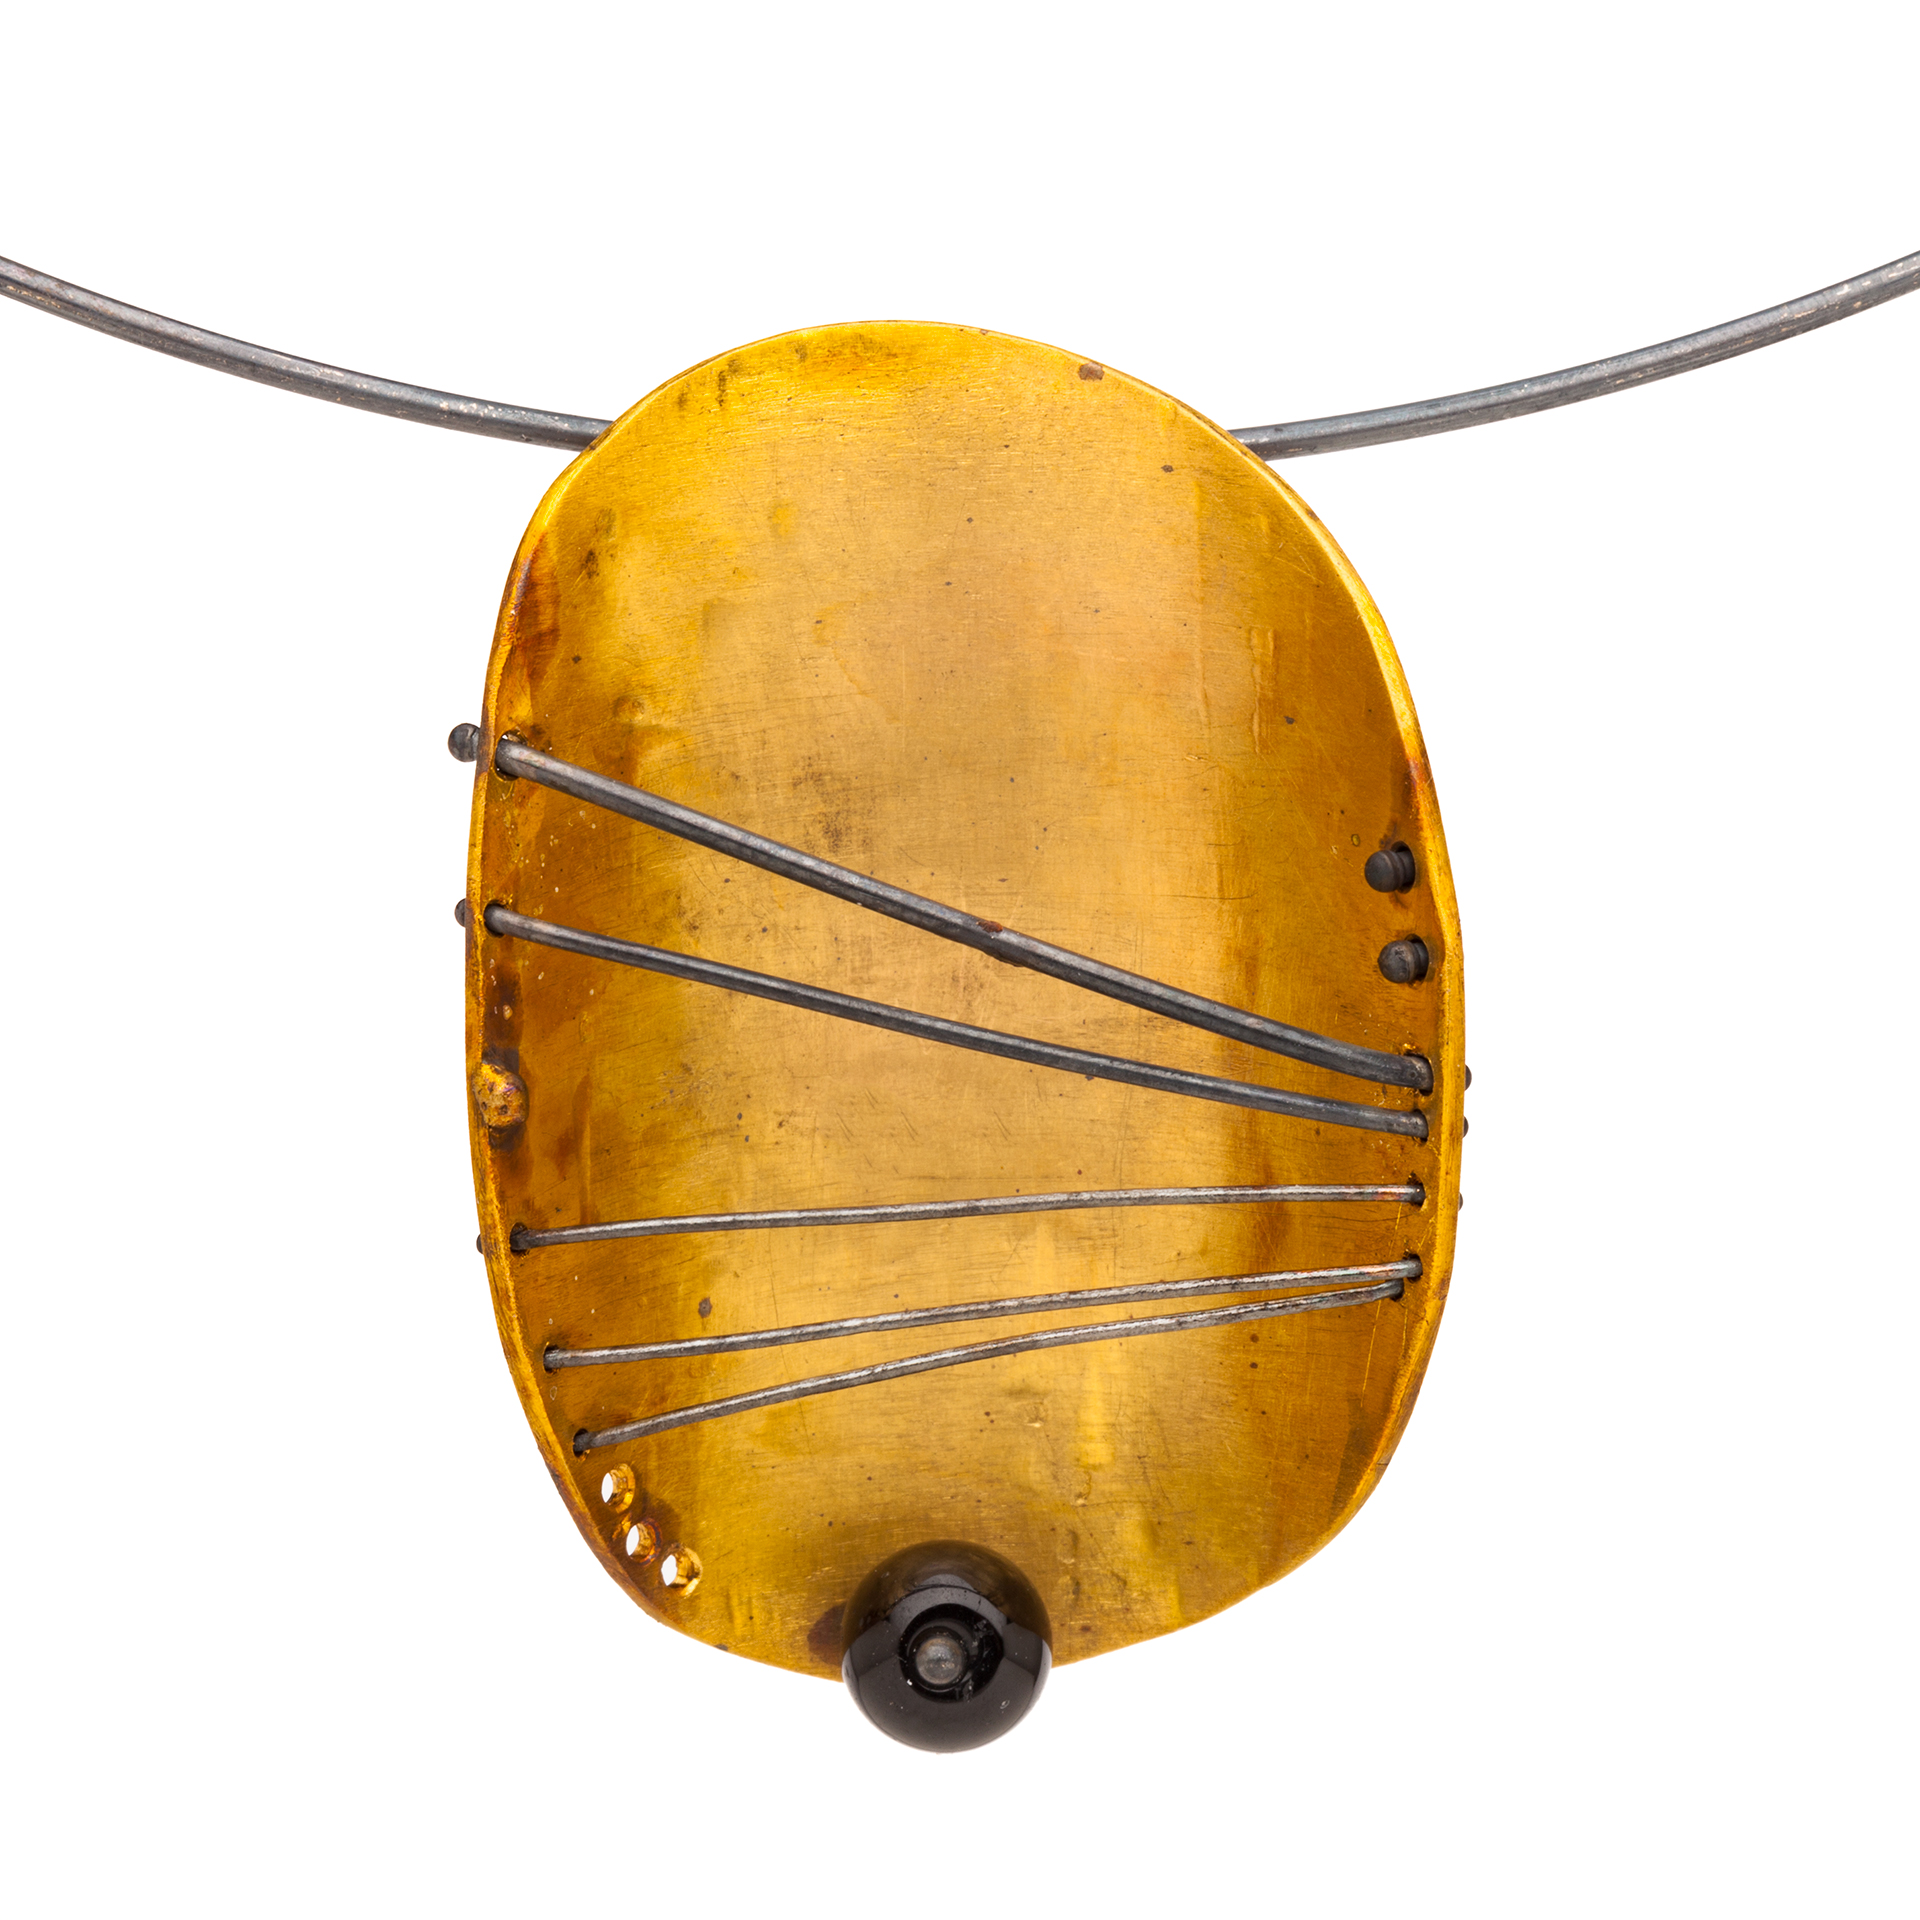 """Title of Piece: Pelagos (after Hepworth). First in the Series Called """"Pelagos (after Hepworth)."""" Pendant materials: 22k gold, oxidized sterling silver, black tourmaline. About 1.5 inches long by 1 inches wide. 2019"""